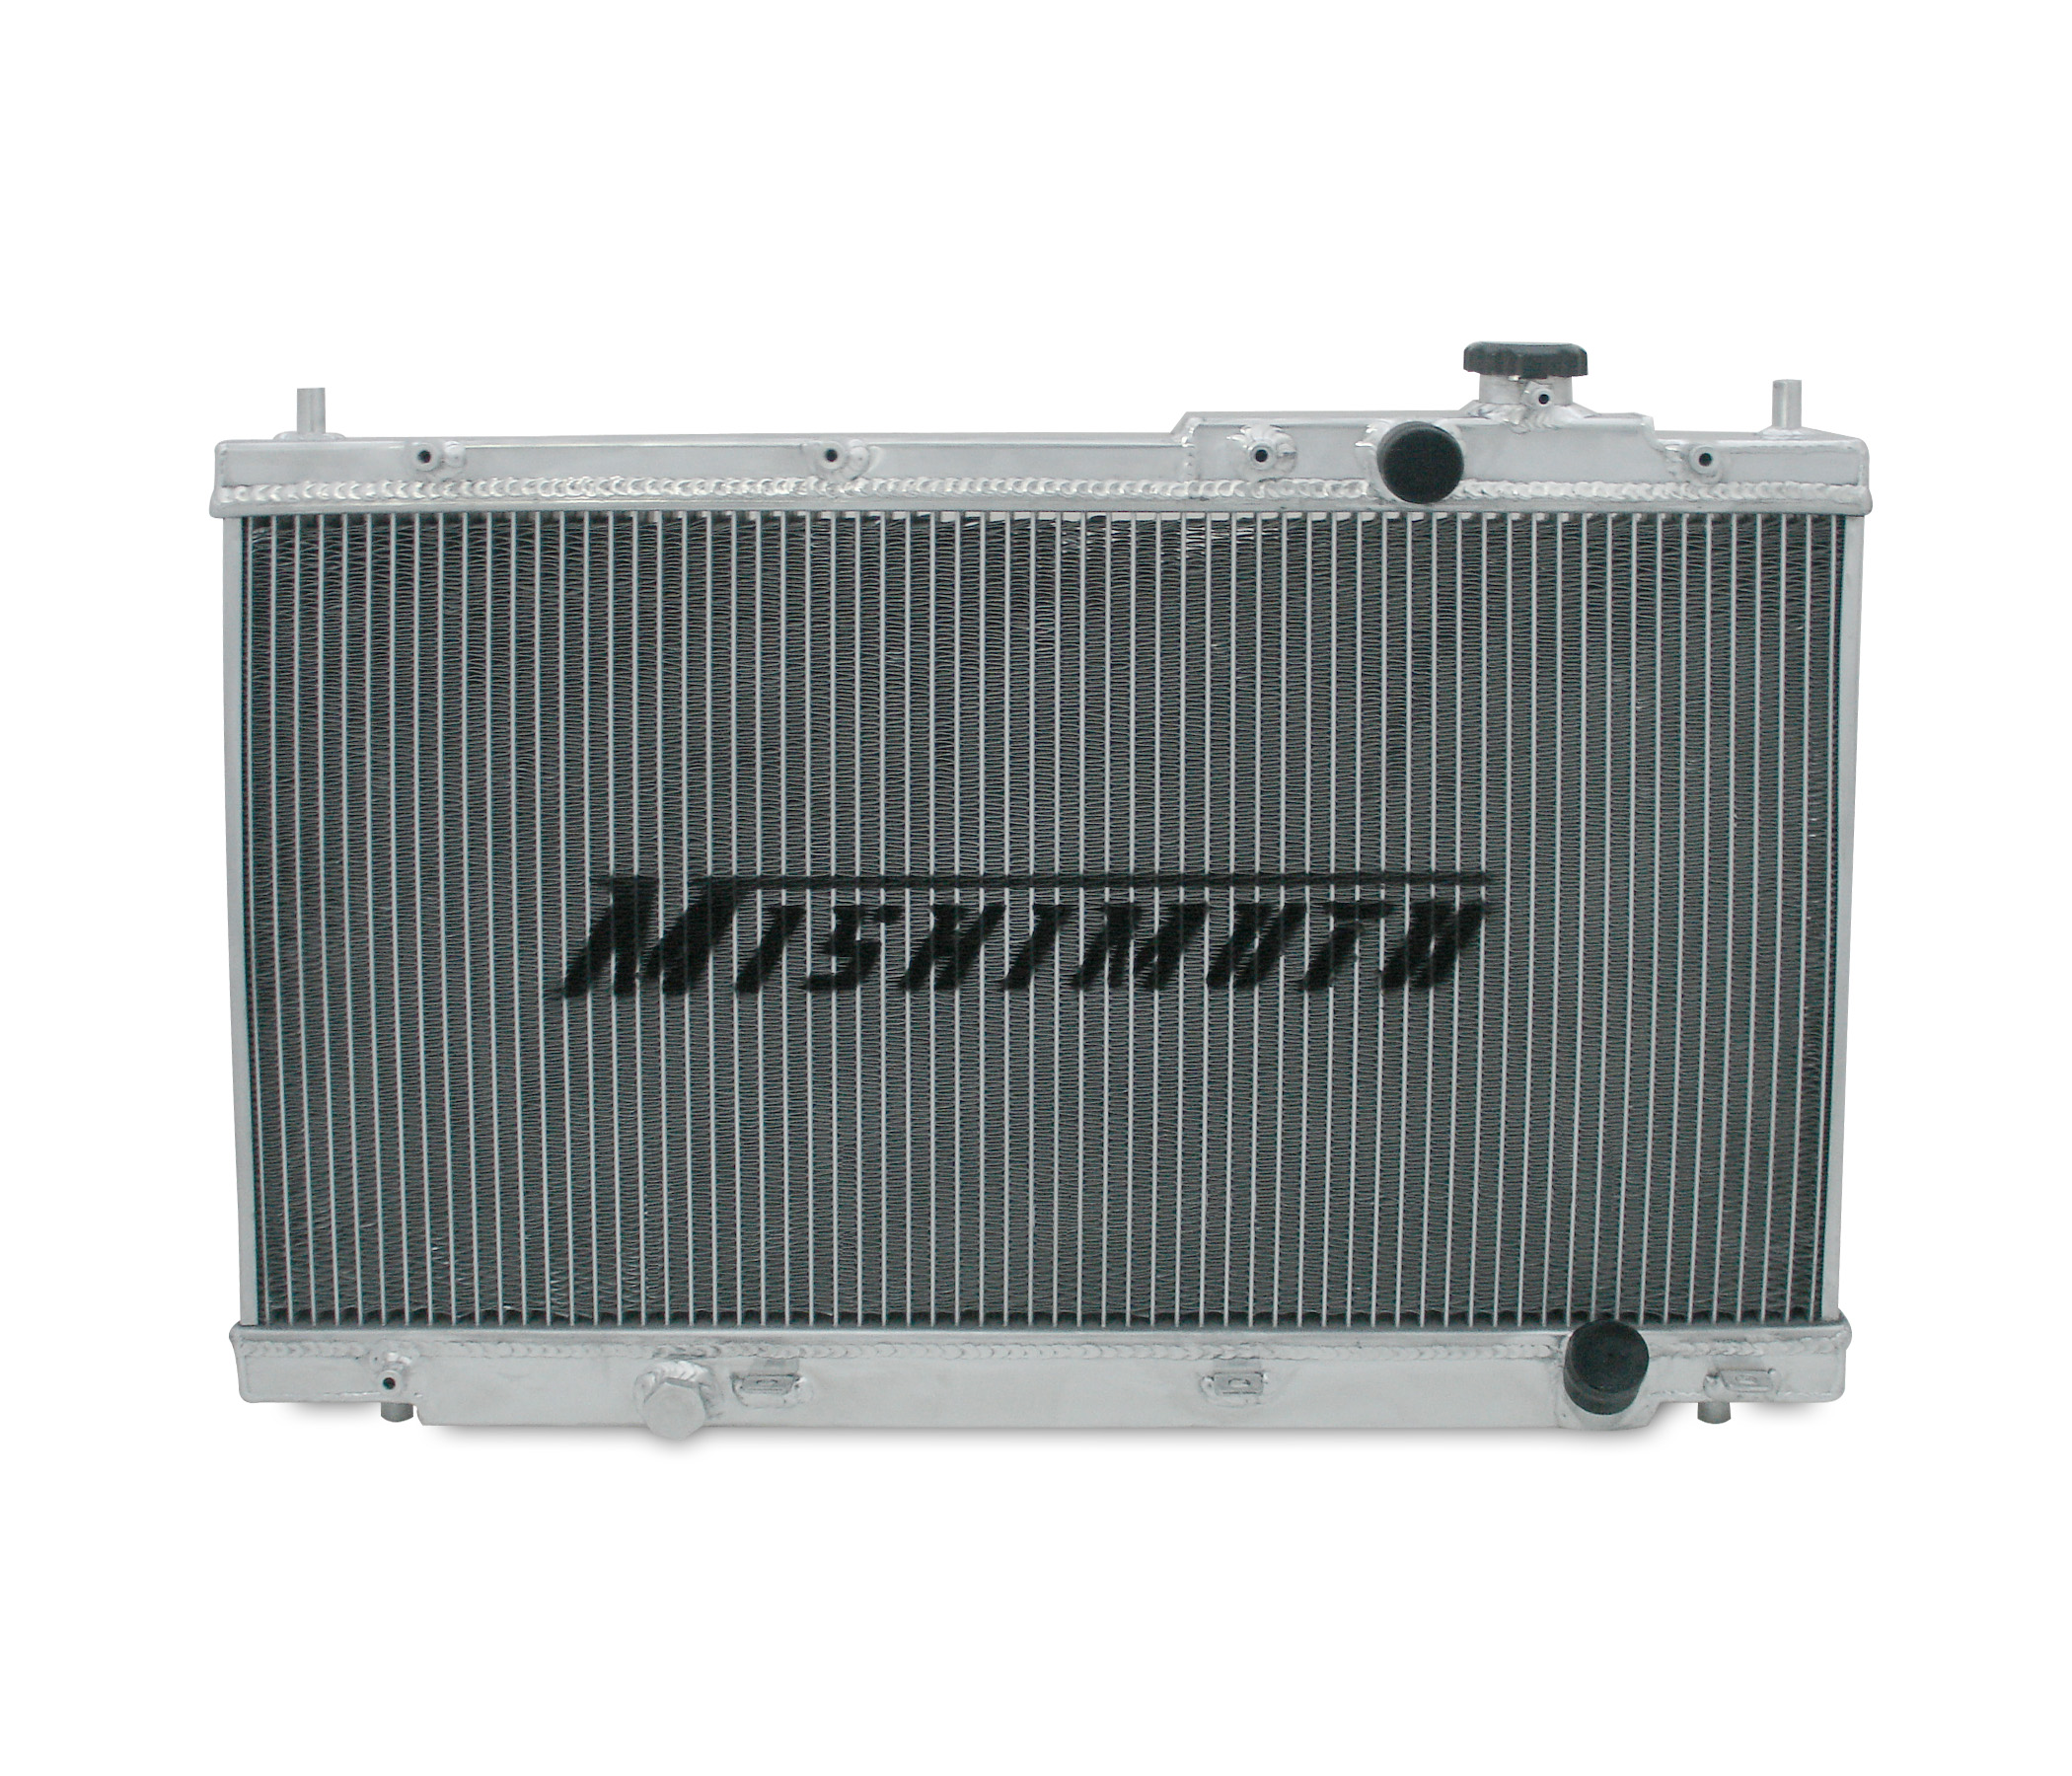 Honda Civic   2001-2005 Mishimoto Performance Aluminum Radiator